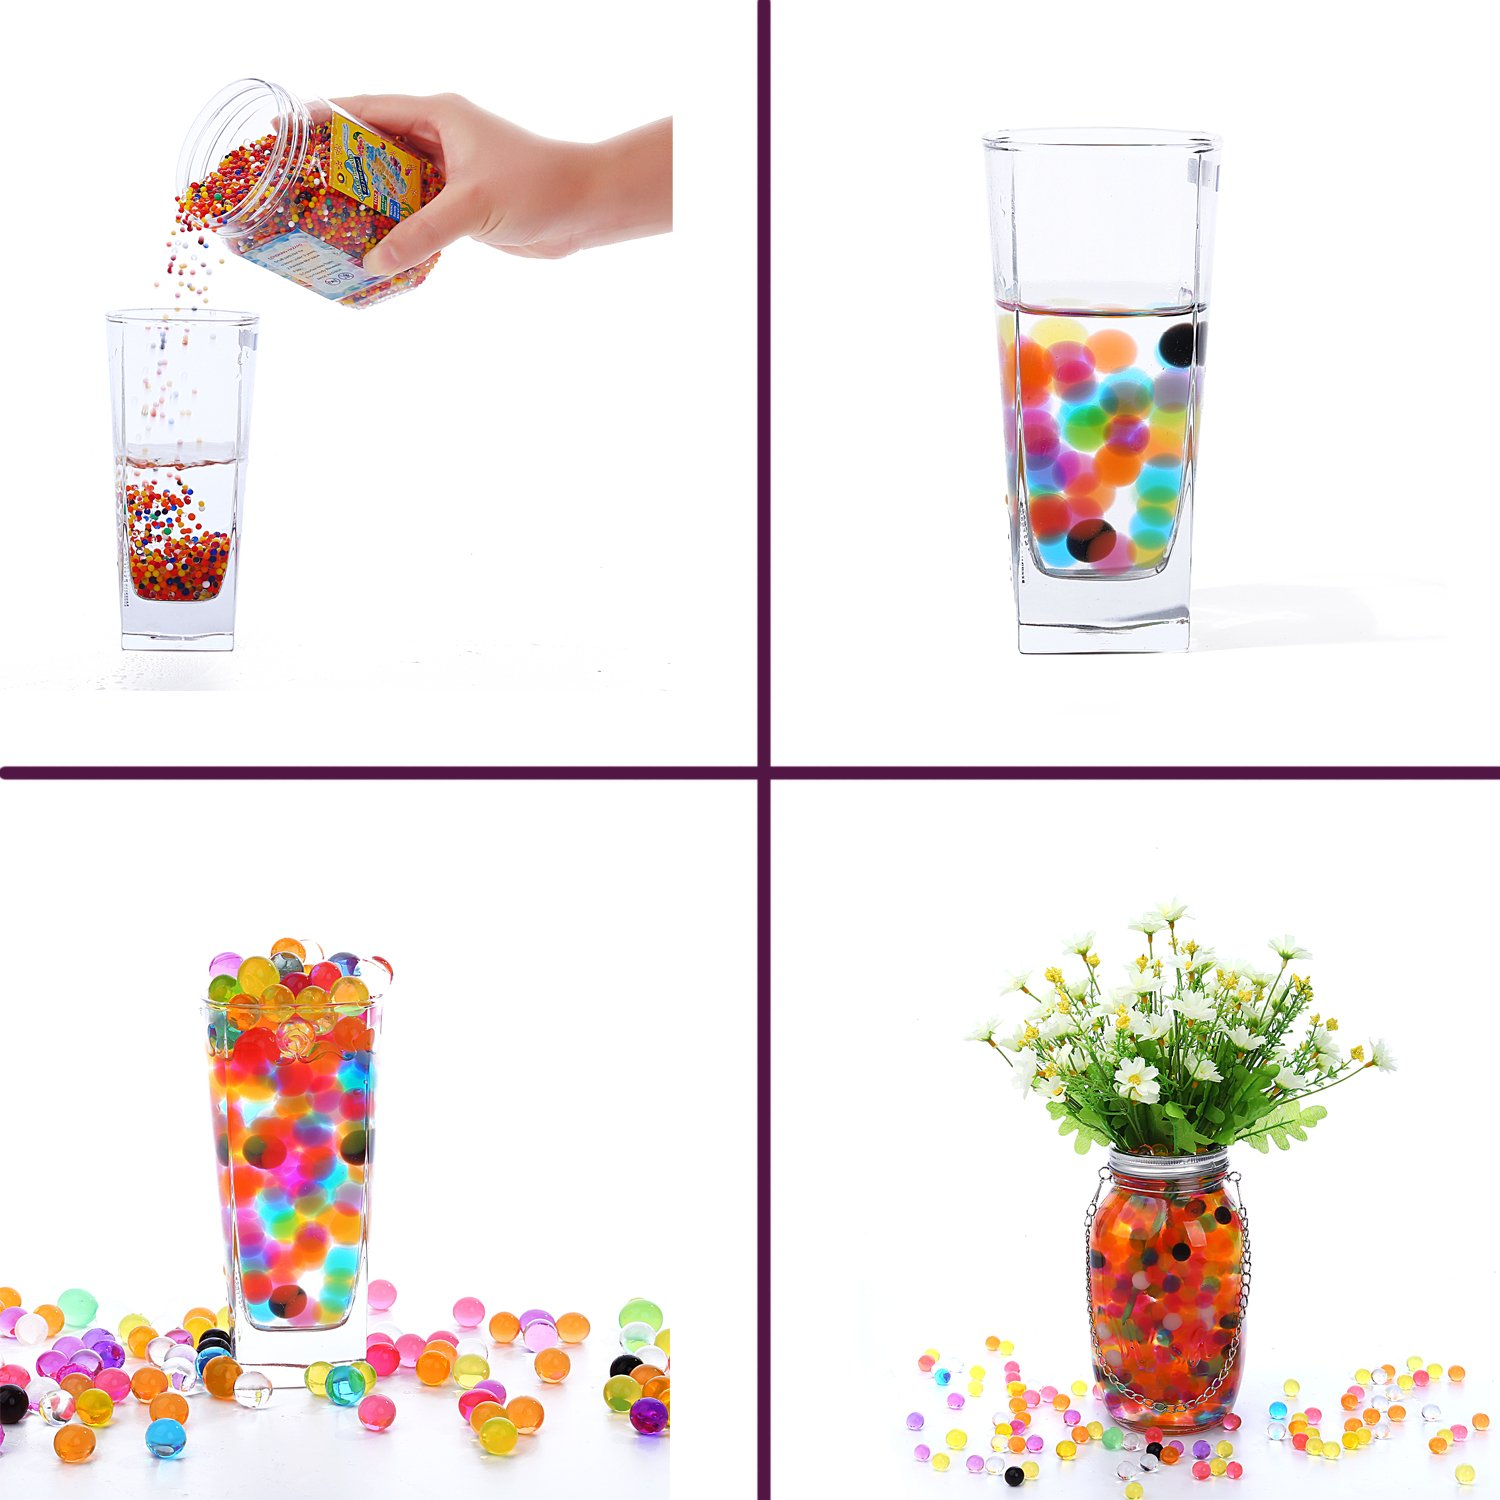 Gaint Water Jelly Pearls Rainbow Mix for Kids Sensory Playing Large Water Gel Beads 11OZ 300pcs Wedding Home Decoration,Plants Vase Filler Sold by Jangostor